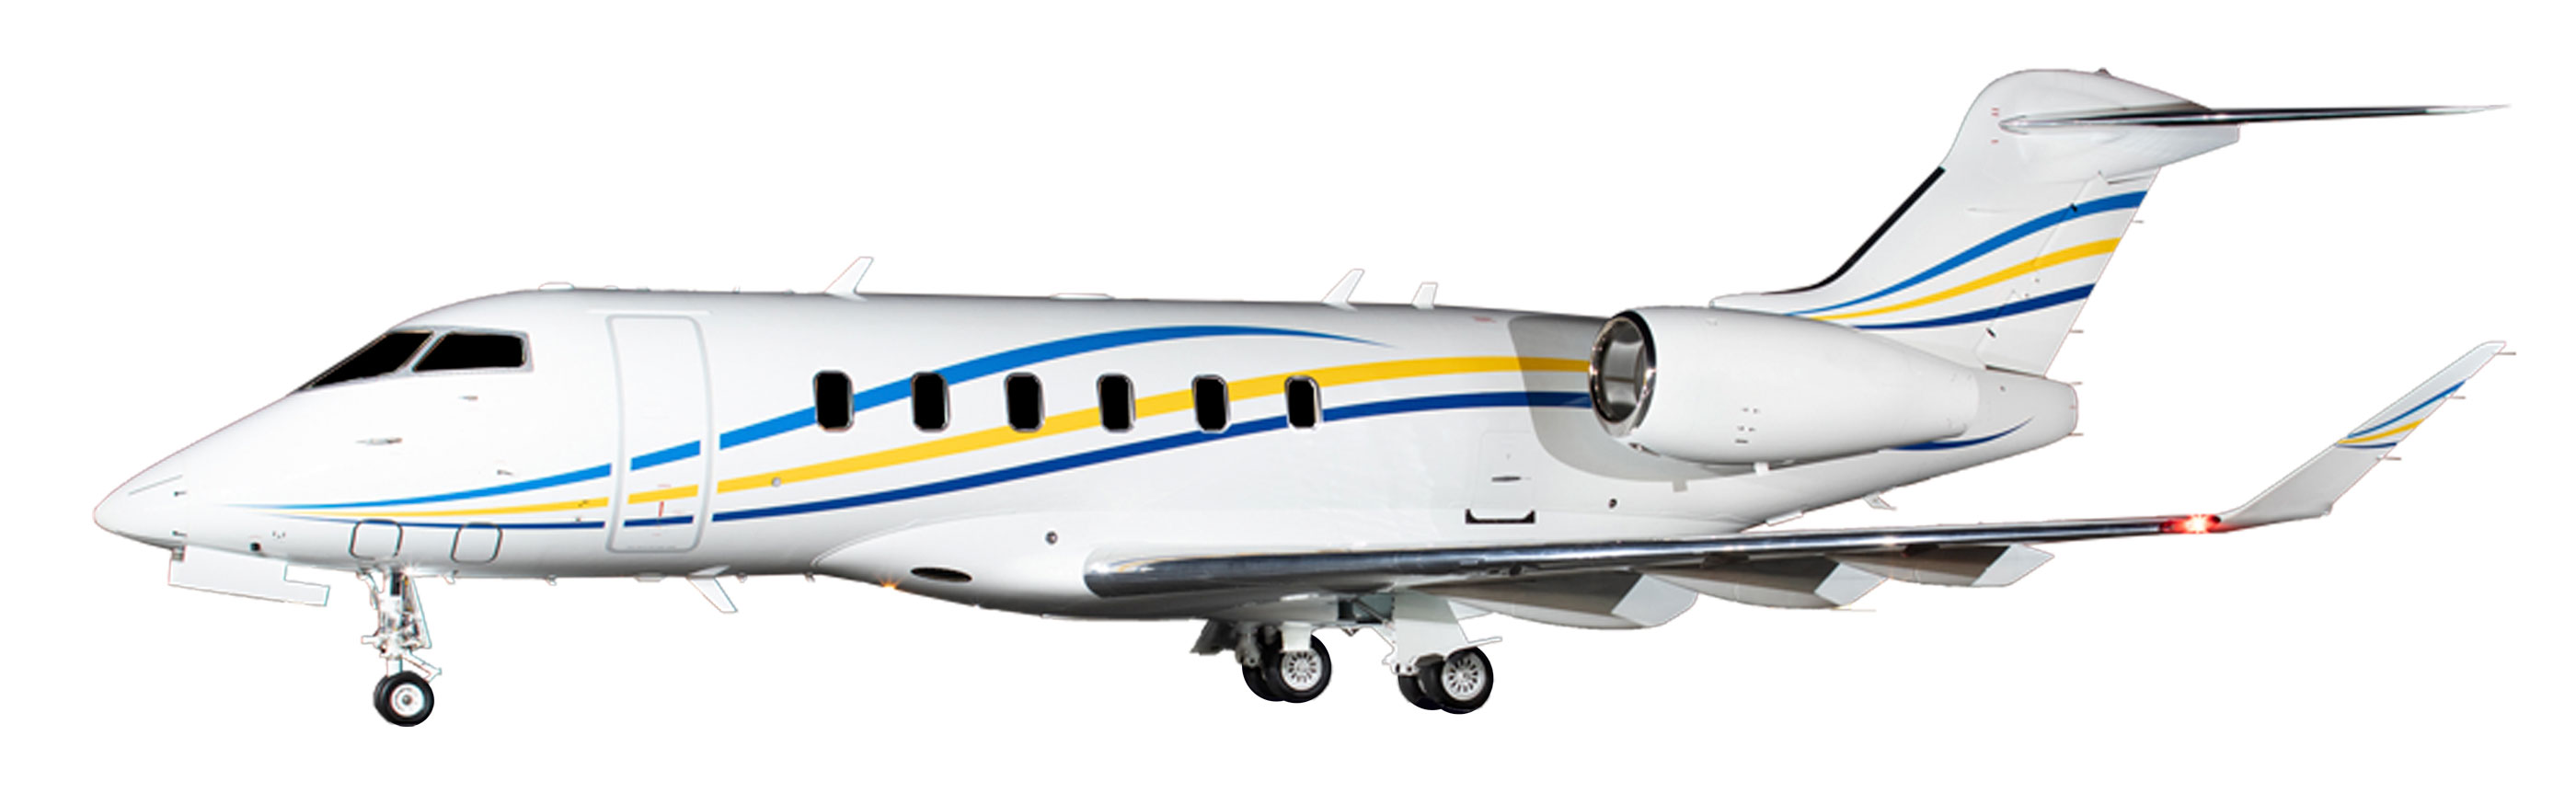 Bombardier Challenger 350 For Charter Aircraft Type Latitude 33 Aviation Exterior